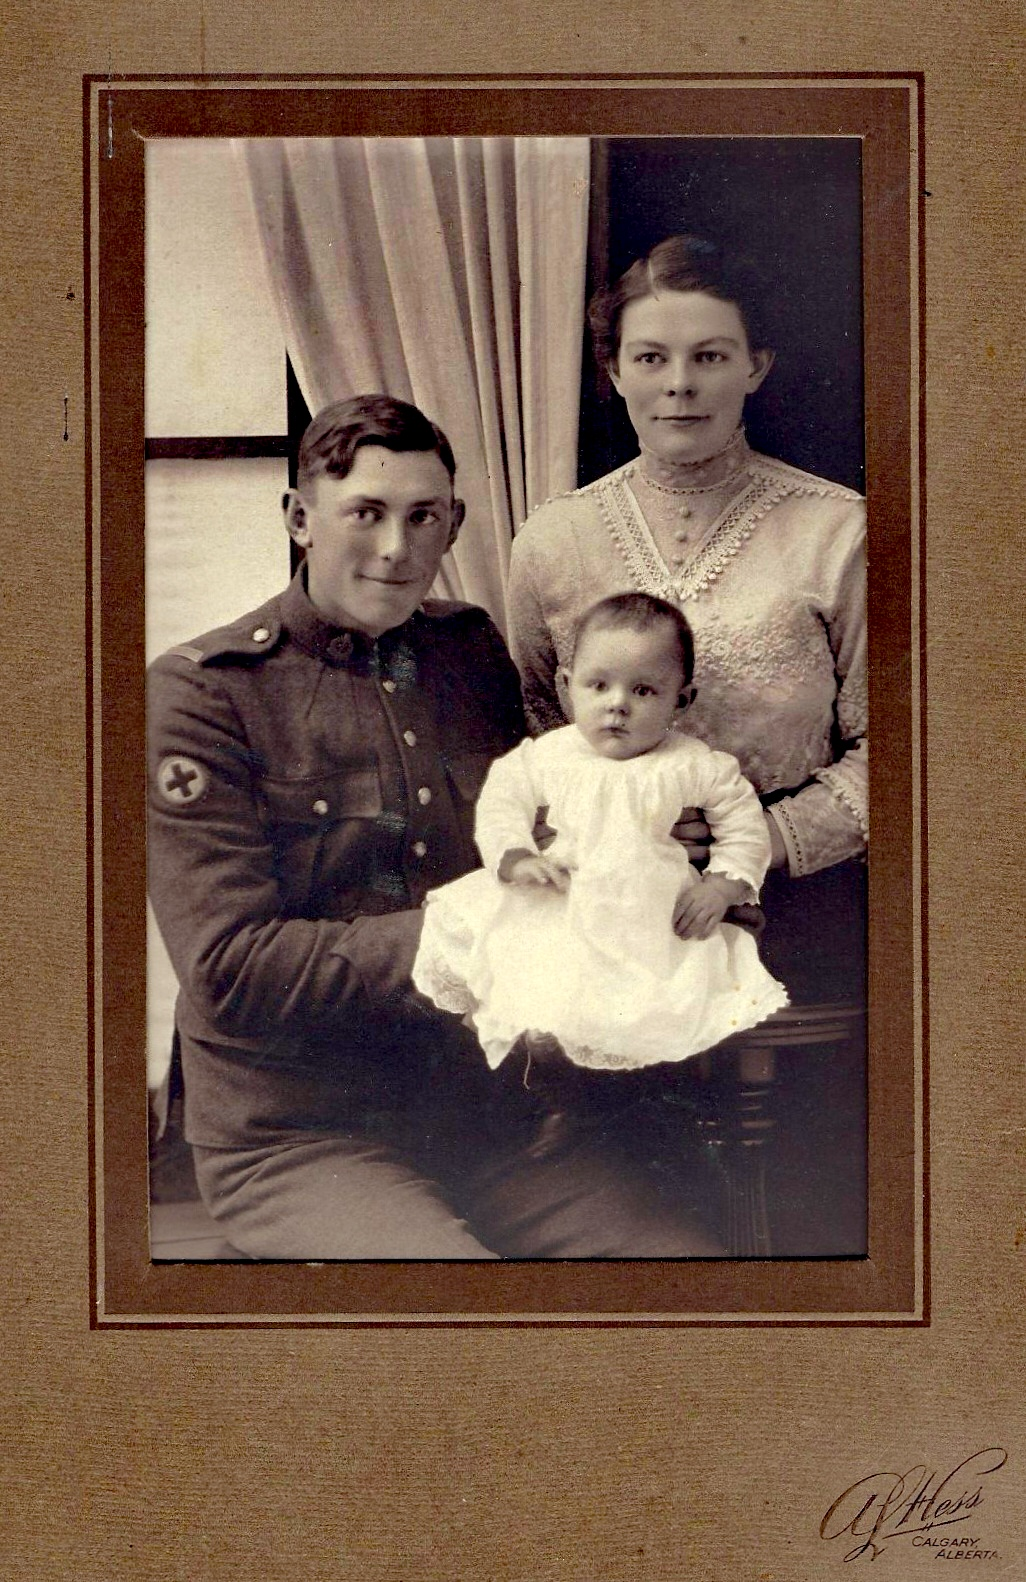 Family Photo– William Hinnells, with his wife Helen, and daughter Queenie (Irene).